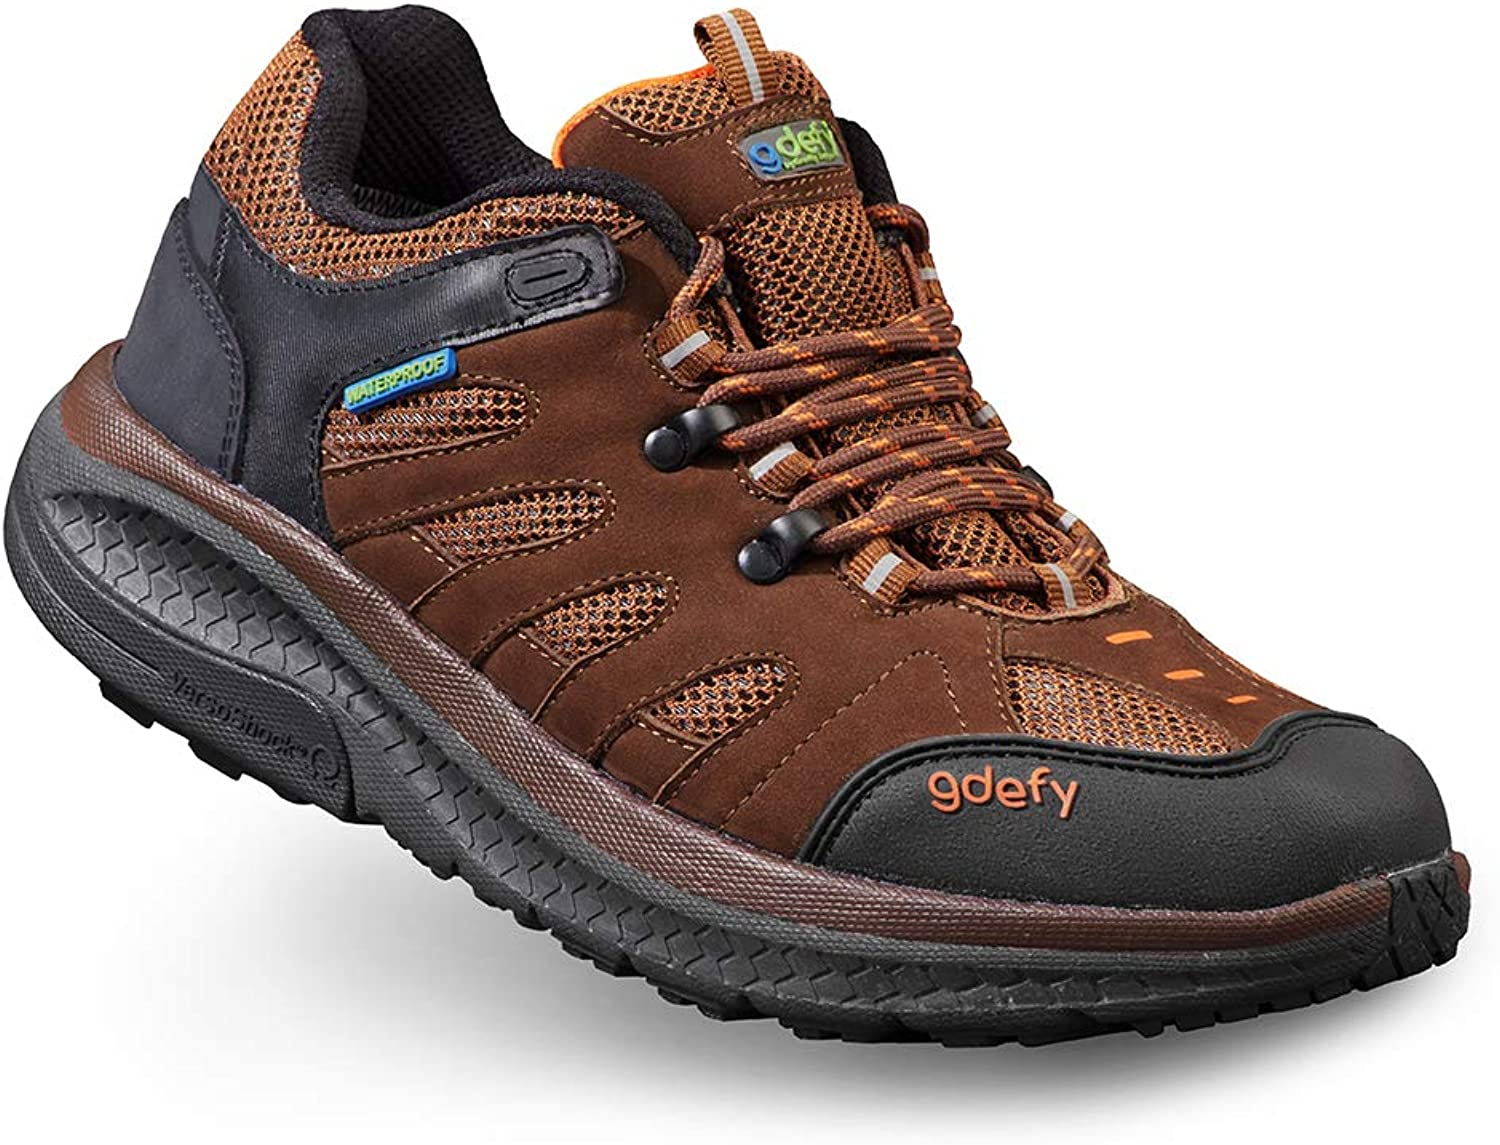 Gravity Defyer Women's GDefy Stride Lane Low Top Clinically Proven Pain Relief Hiking shoes